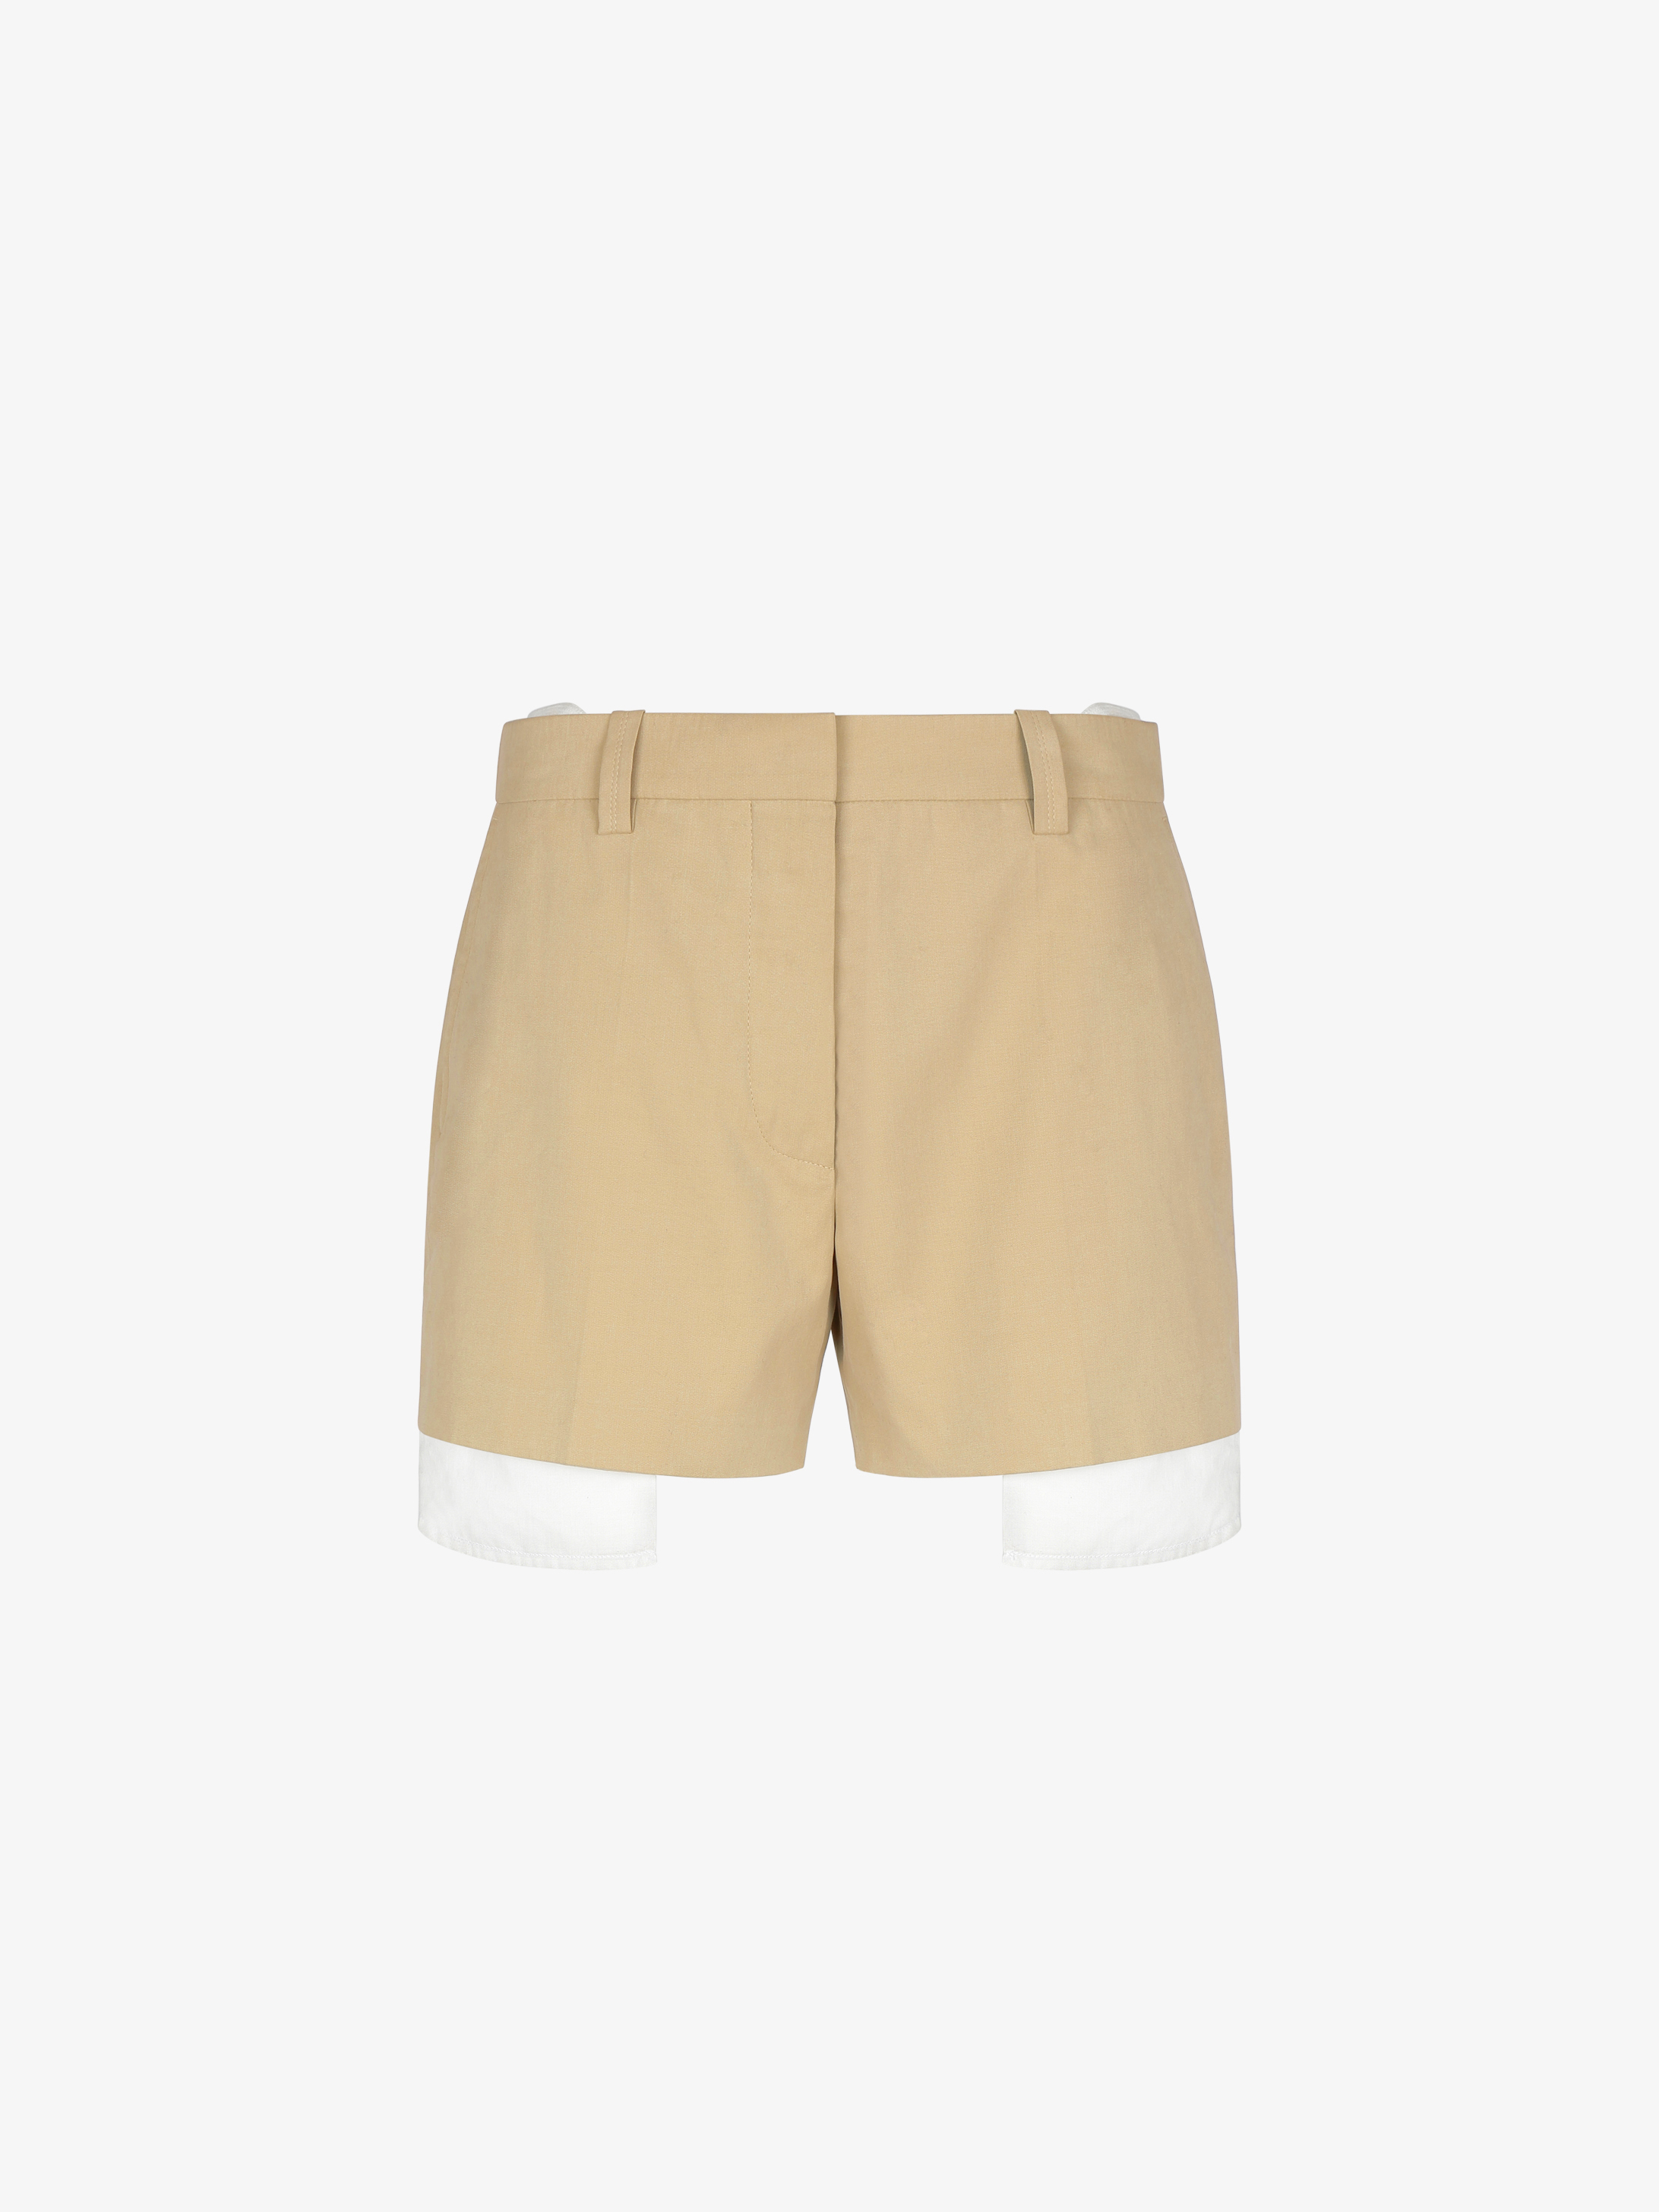 Short in popeline con tasche a vista